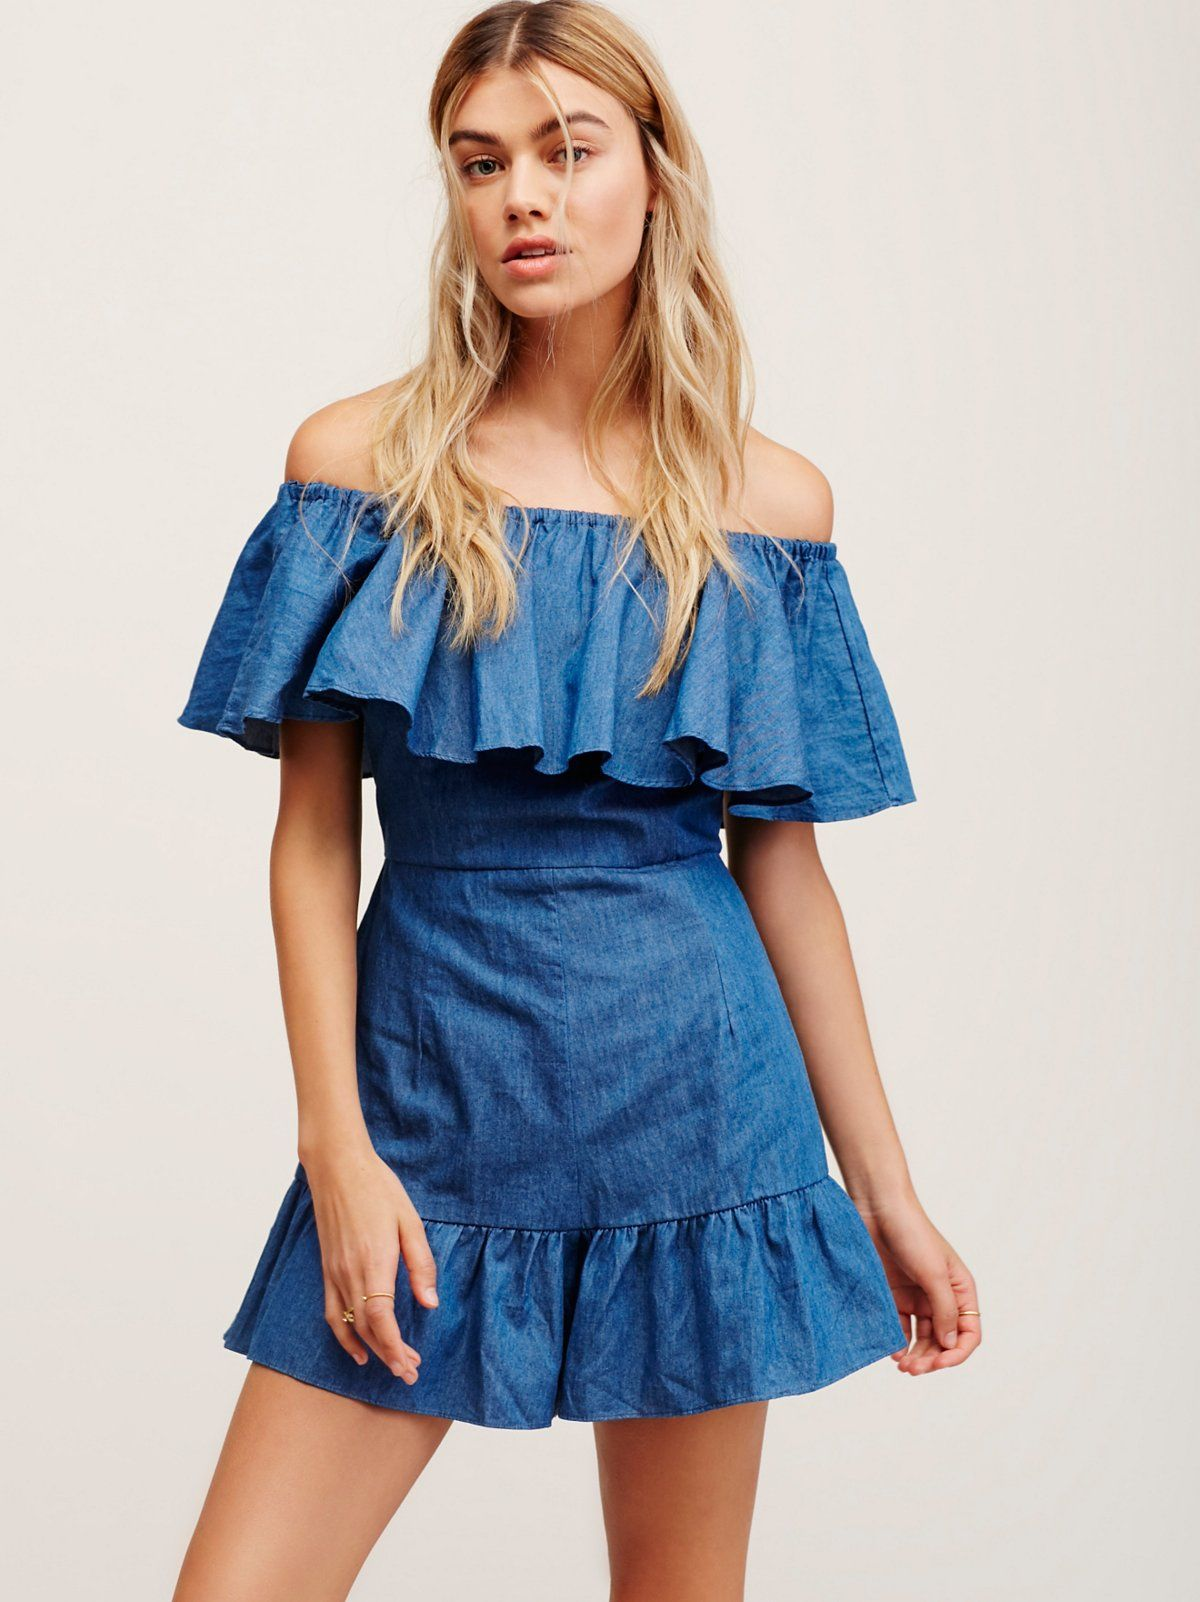 fe1d61716351 Genie Frill Playsuit. Jumpsuits   RompersPlaysuitsChambrayFree People  ClothingClothing BoutiquesOverlaysClosureRufflesSilhouette. Shakuhachi Denim  ...